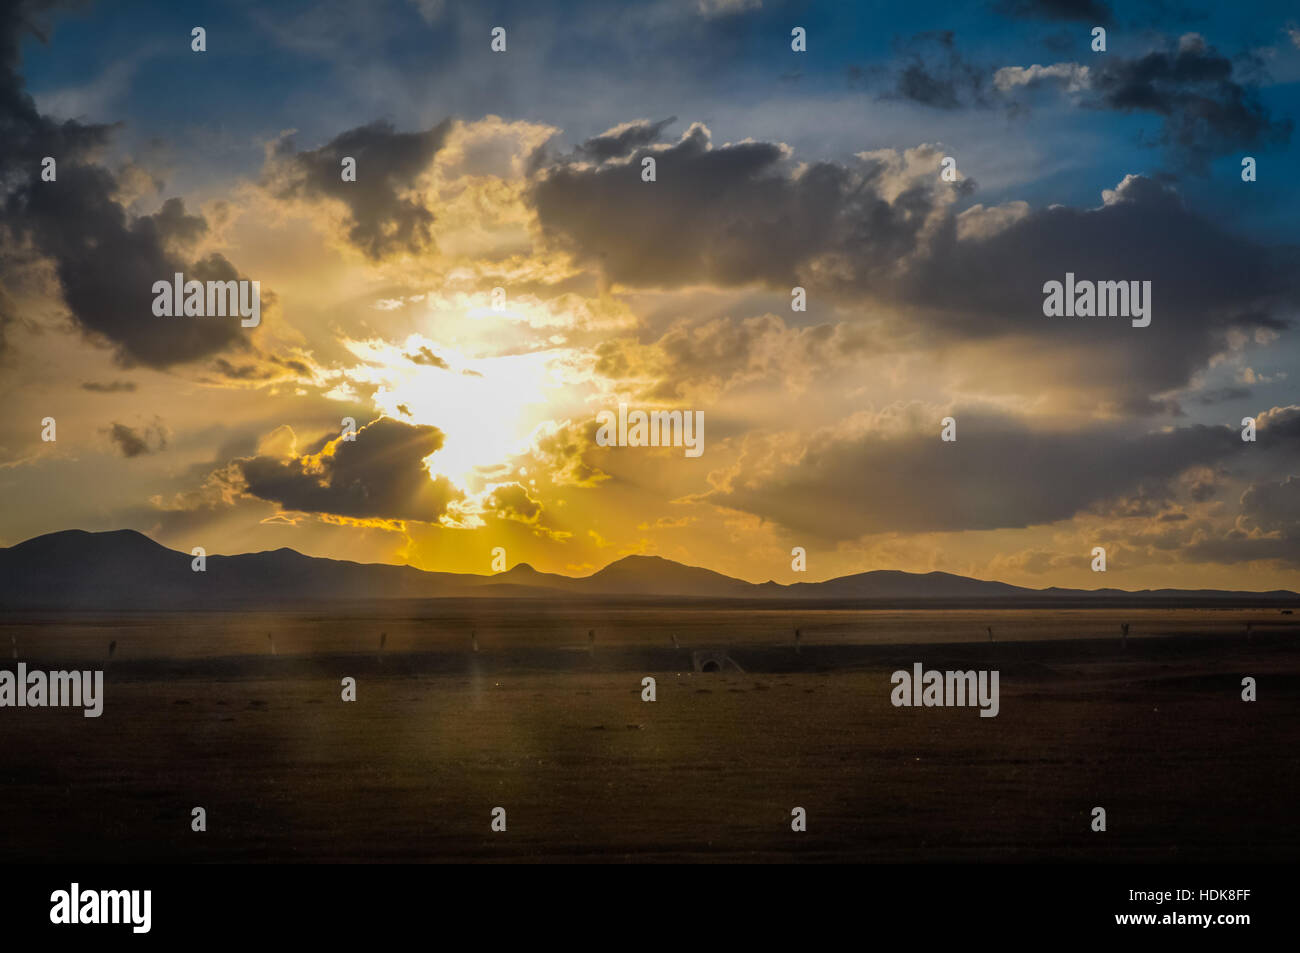 Photo of sunset on cloudy sky in Ala Archa National Park in Kyrgystan. - Stock Image